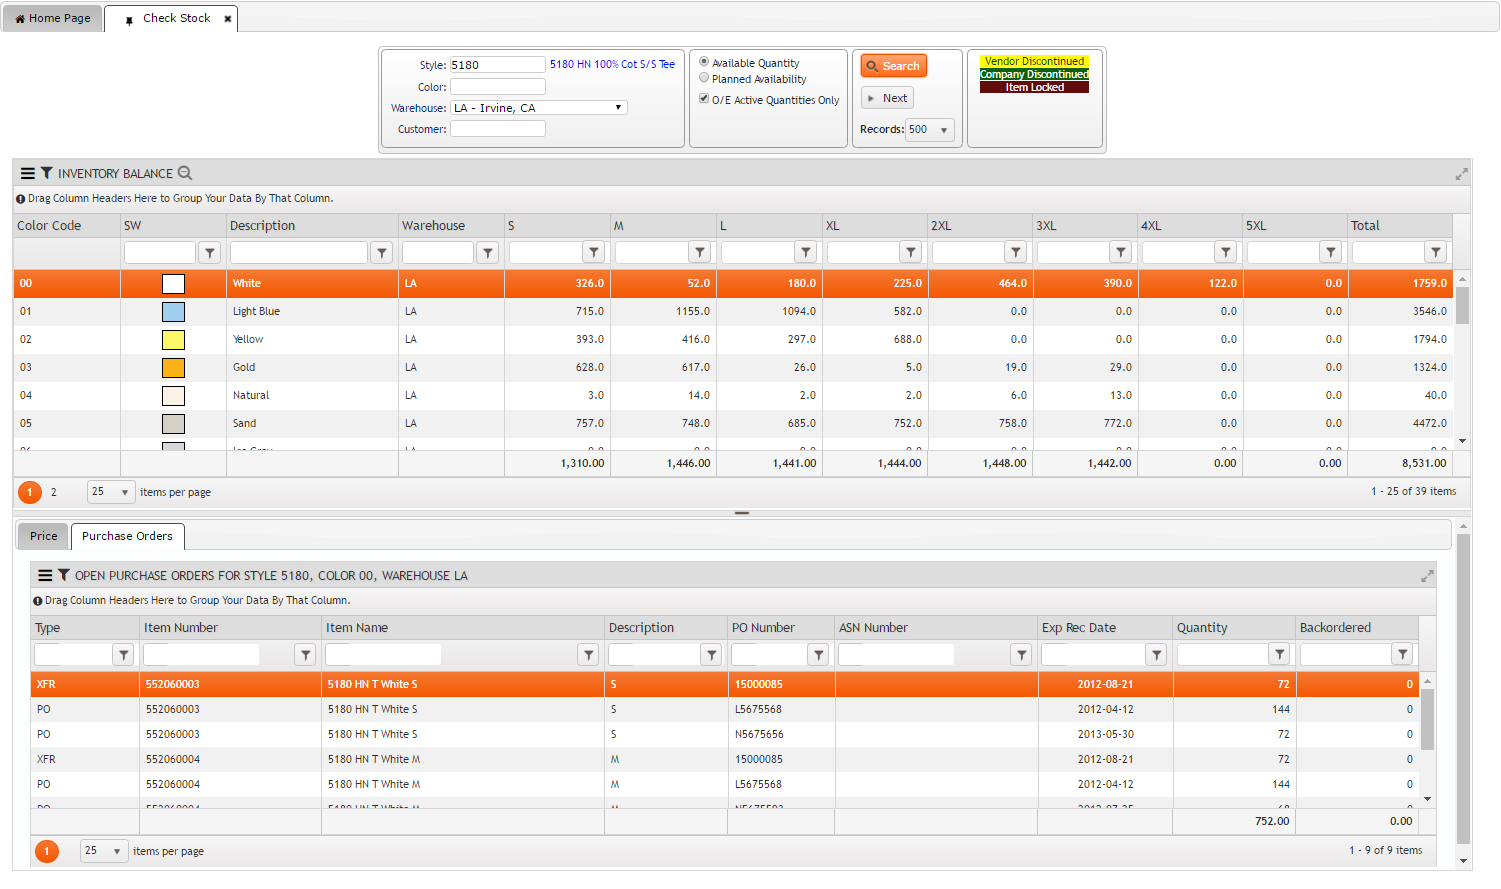 Inventory Control Check Stock On FDM4 V15 Web-based ERP